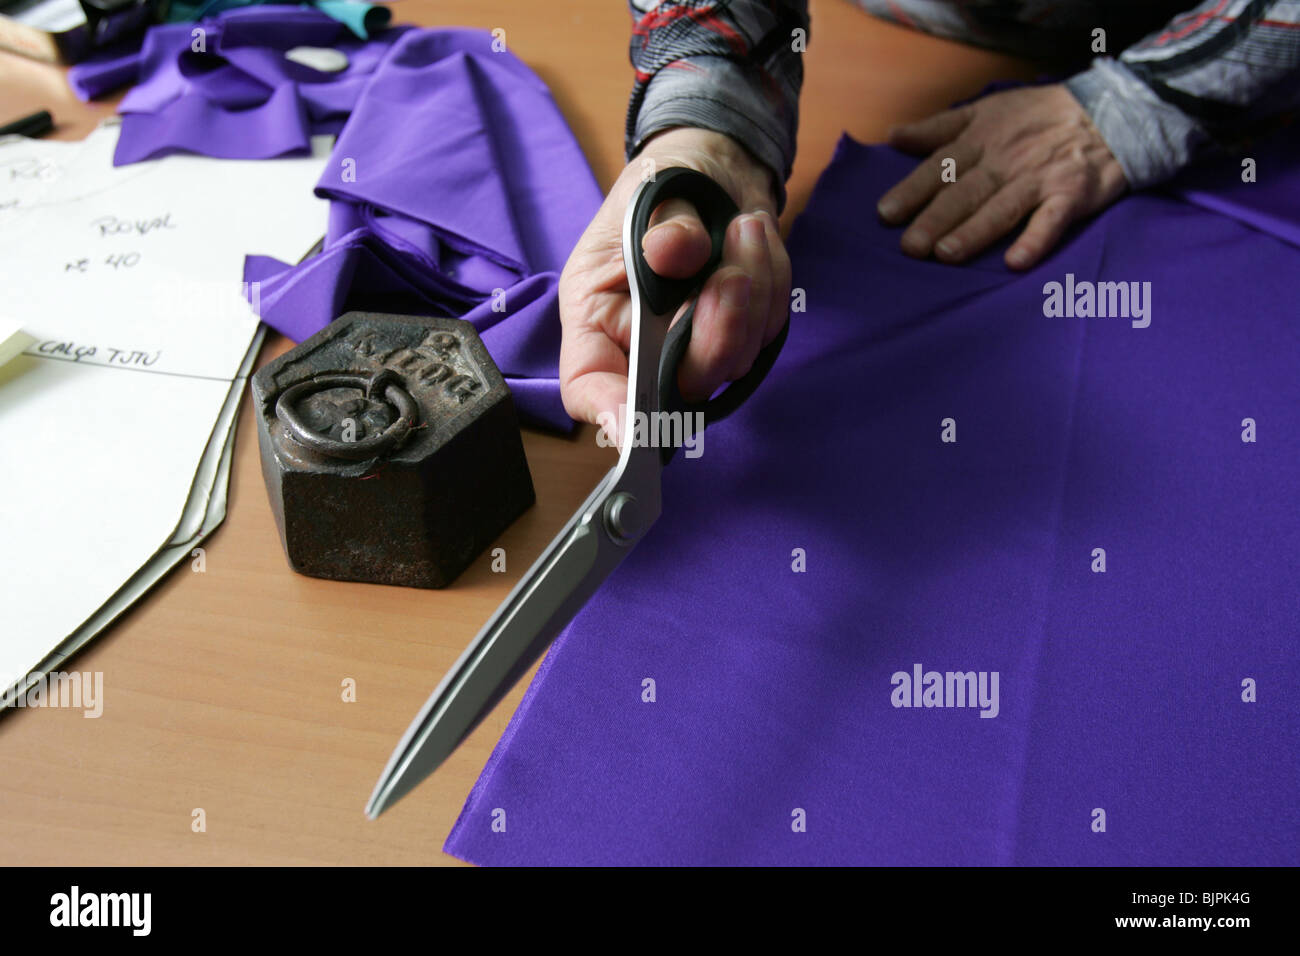 Woman`s hand cutting fabric with a scissor. - Stock Image